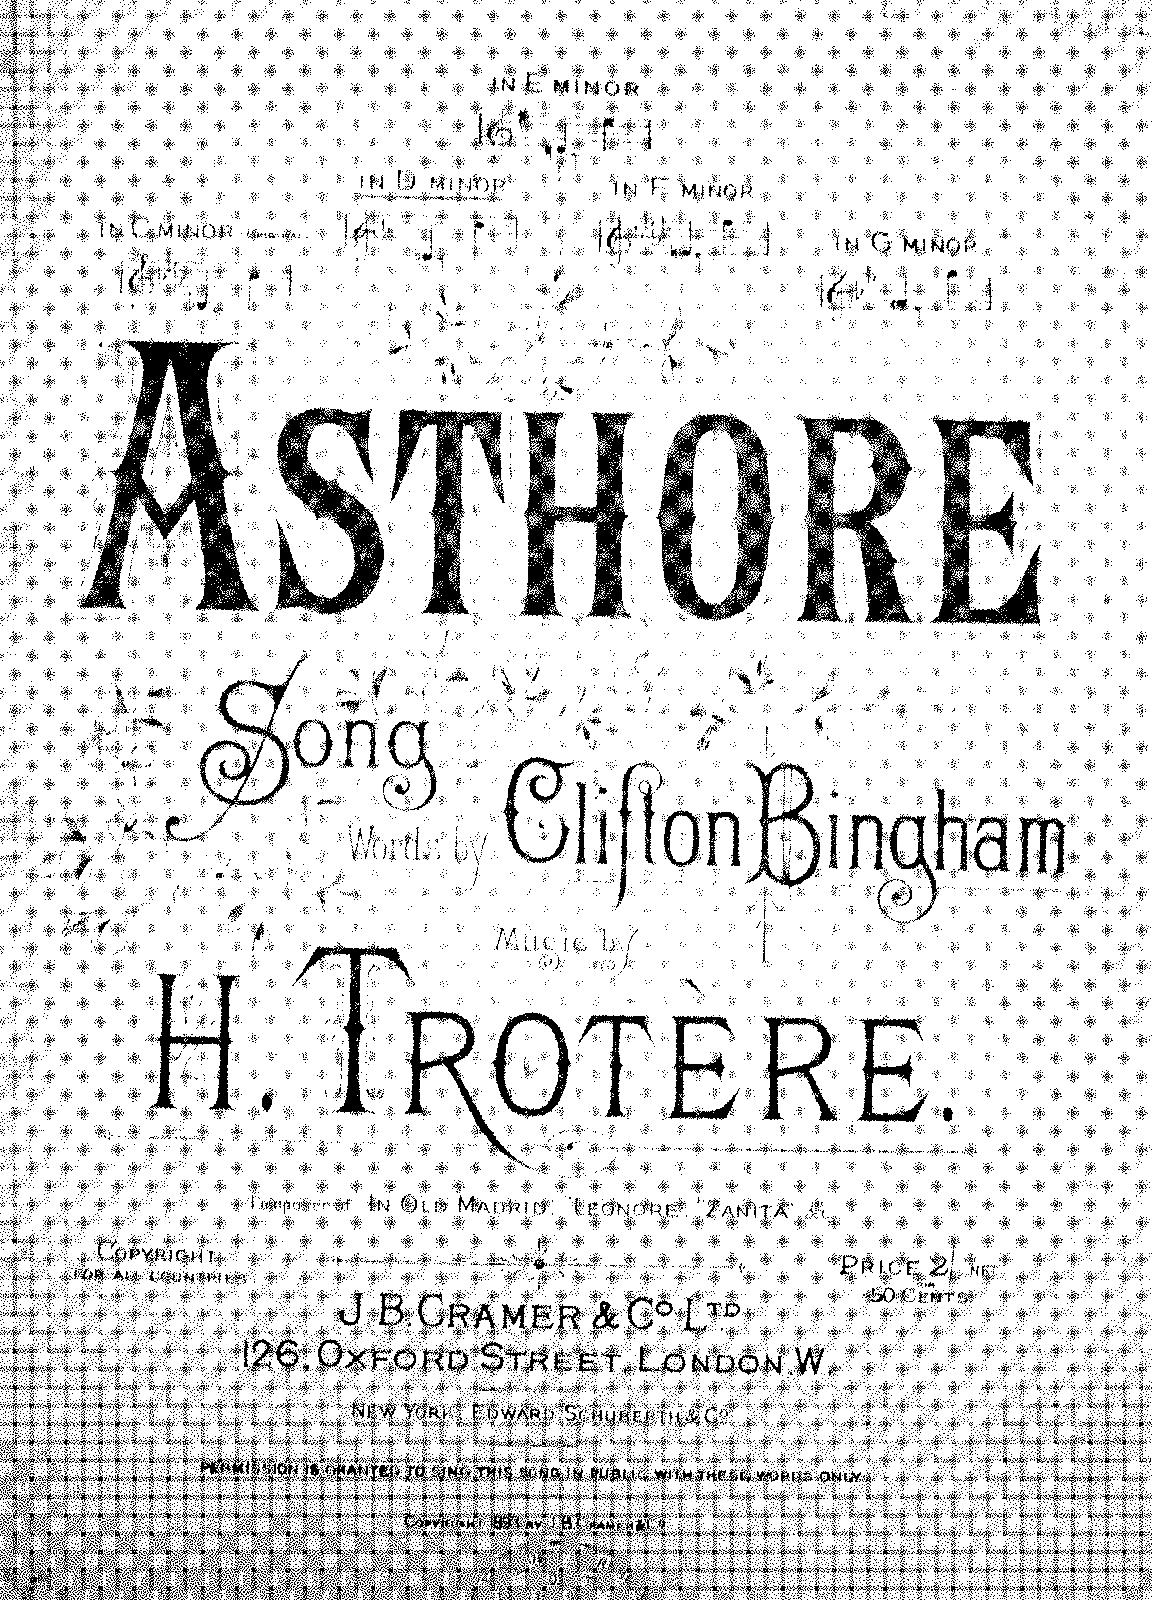 PMLP685442-TROTERE Asthore.pdf